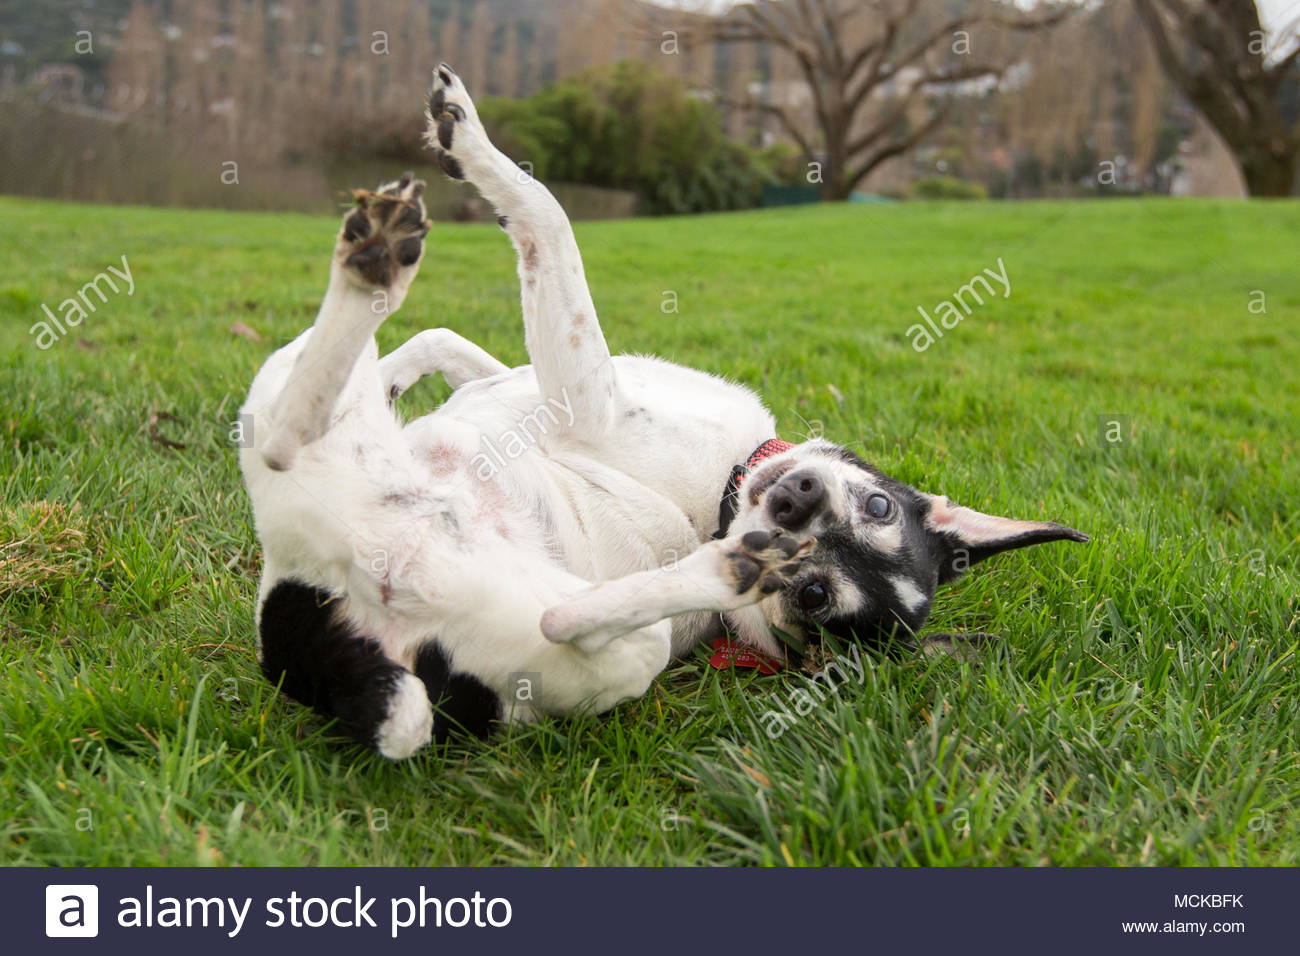 Senior terrier dog rolling on back with paws in the air looking toward camera - Stock Image